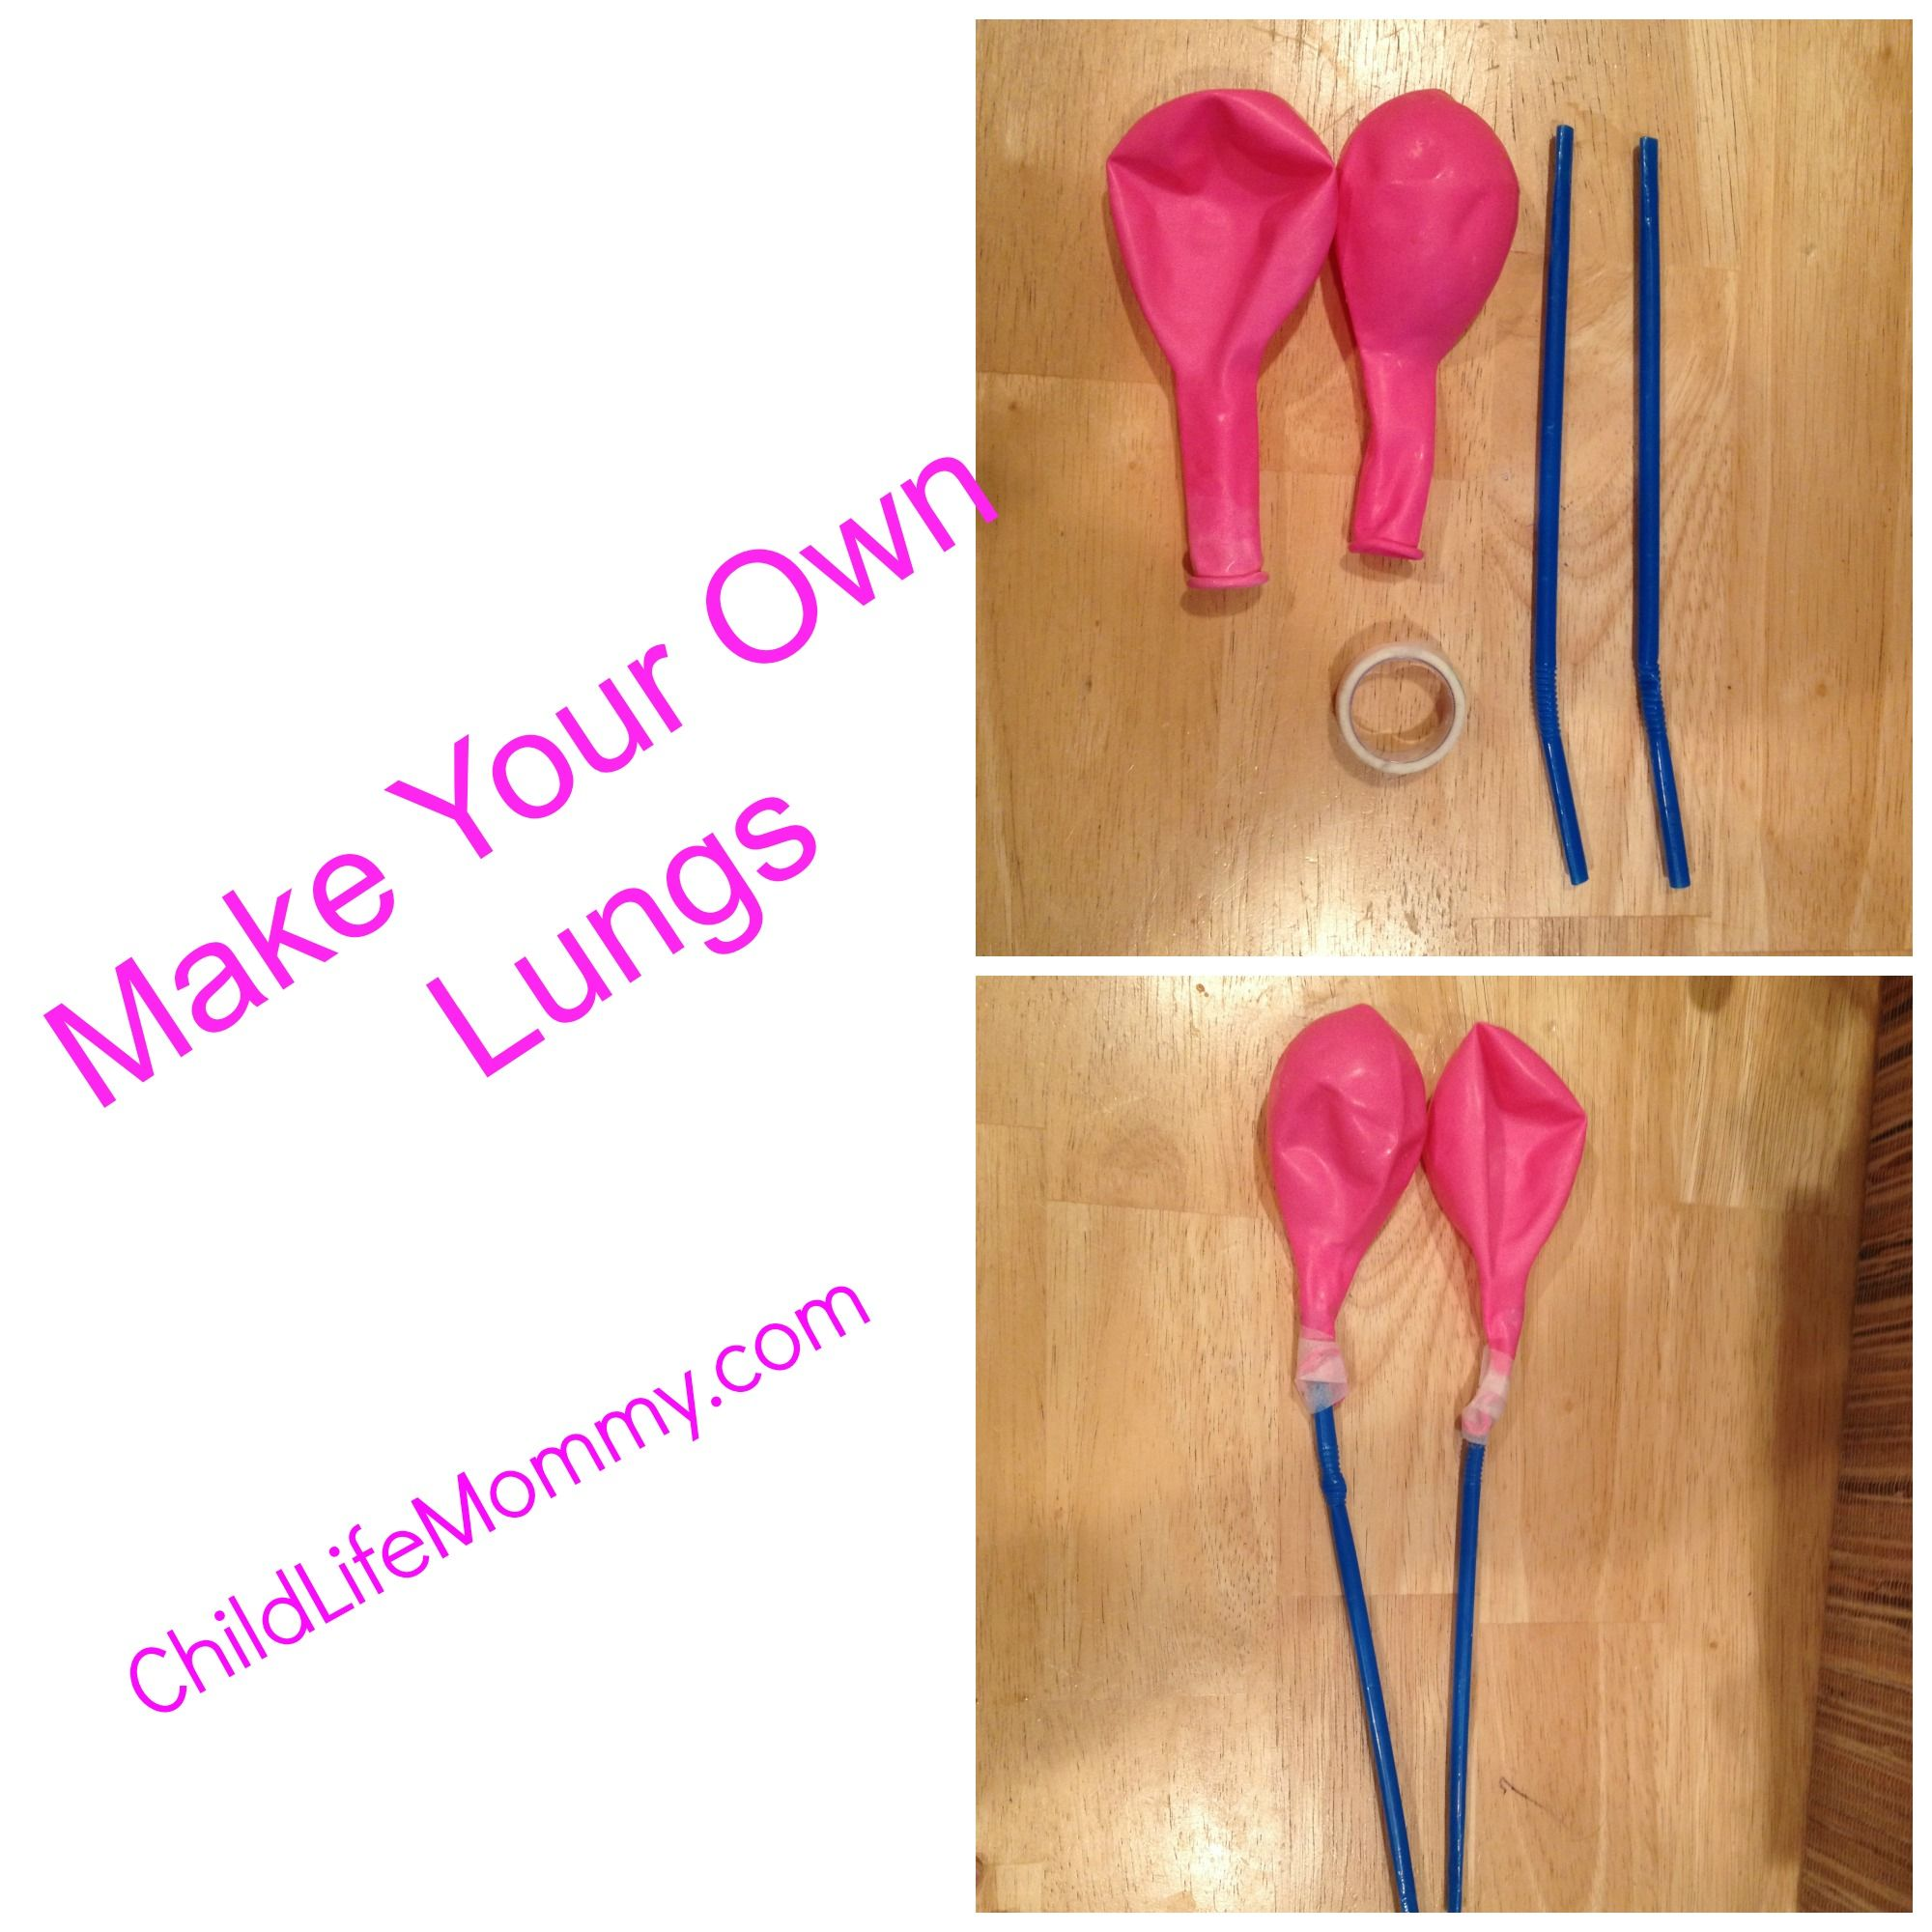 Diy Lungs To Make To Help Children With Asthma Cystic